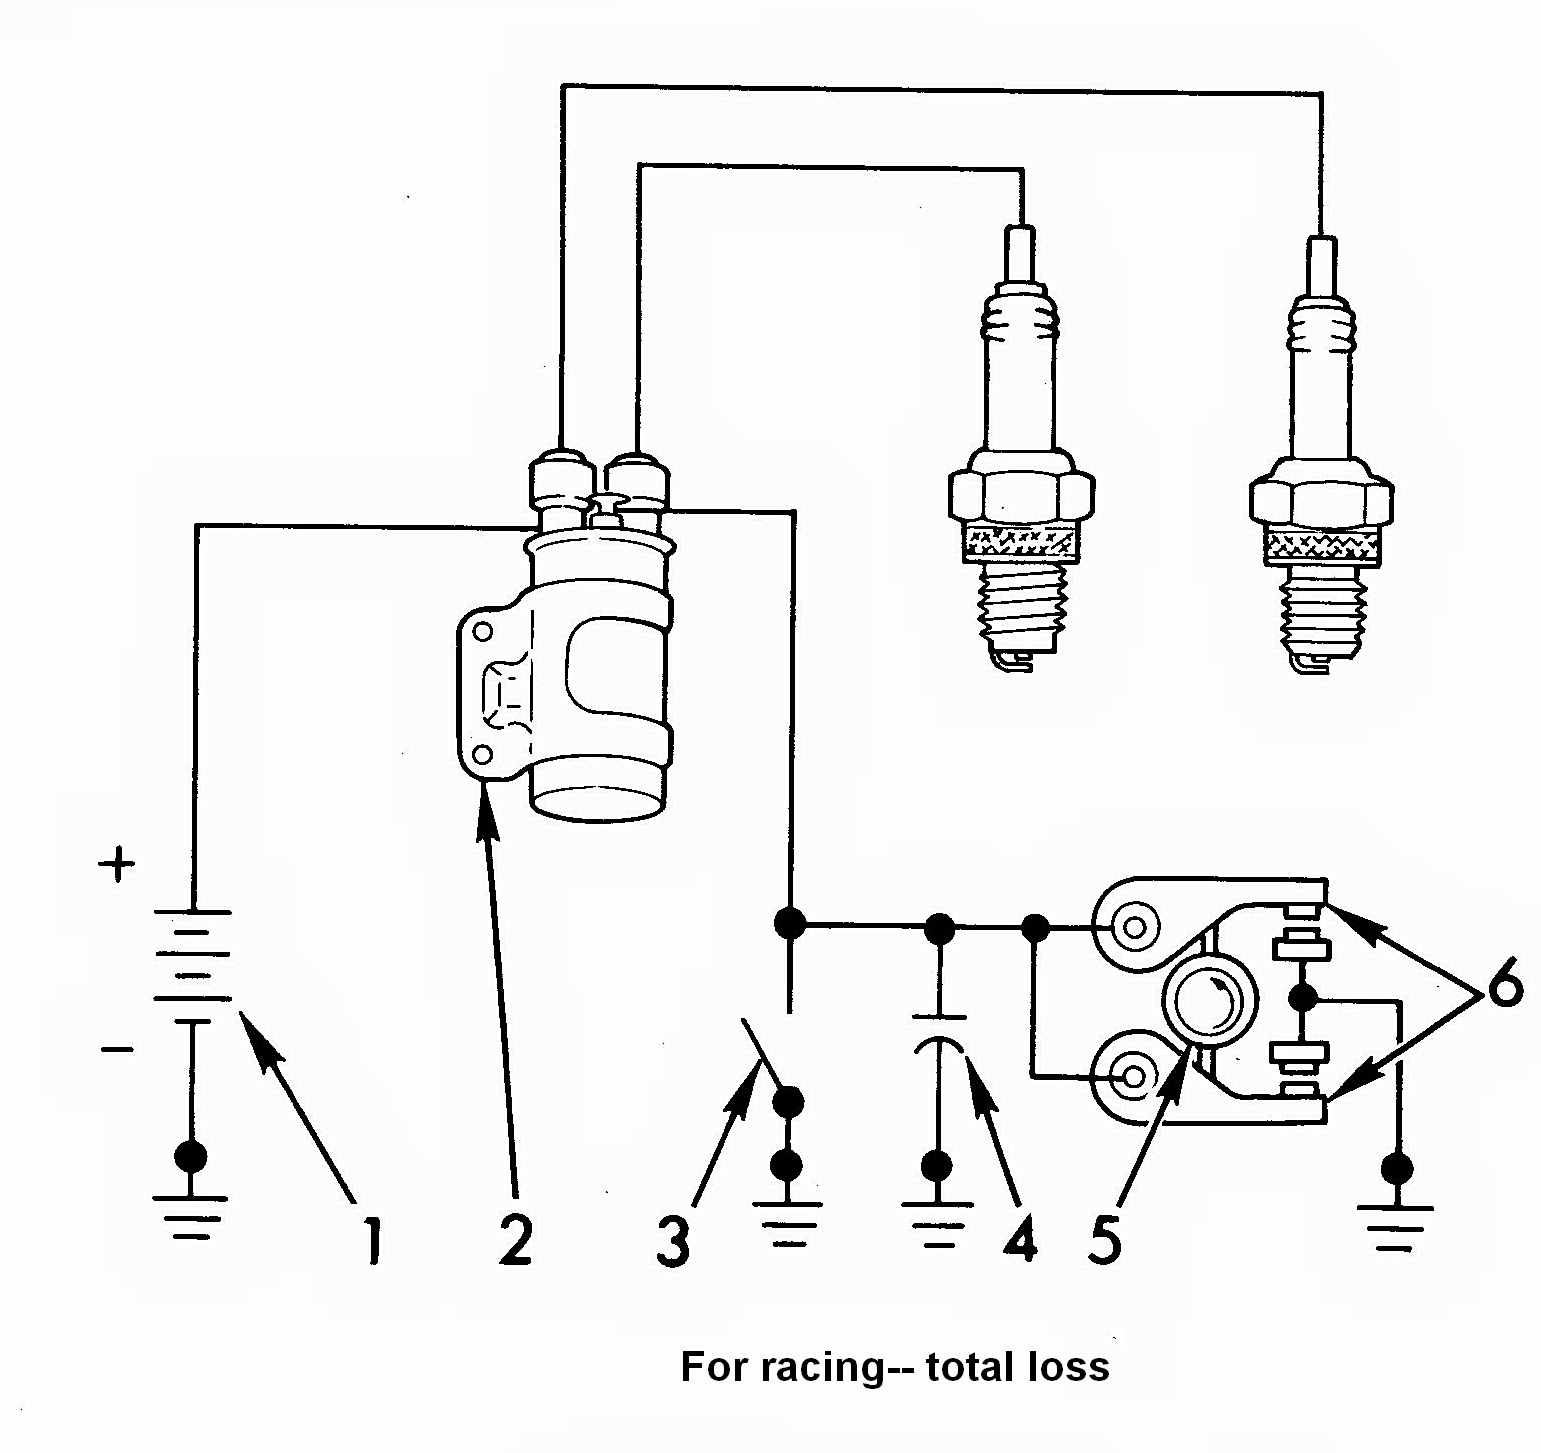 Single Point Distributor Wiring Diagram Automotive Type Ignition Schematic Coil Pack Detailed Rh 6 1 Gastspiel Gerhartz De 1949 Cadillac Wire Diagrams Gm